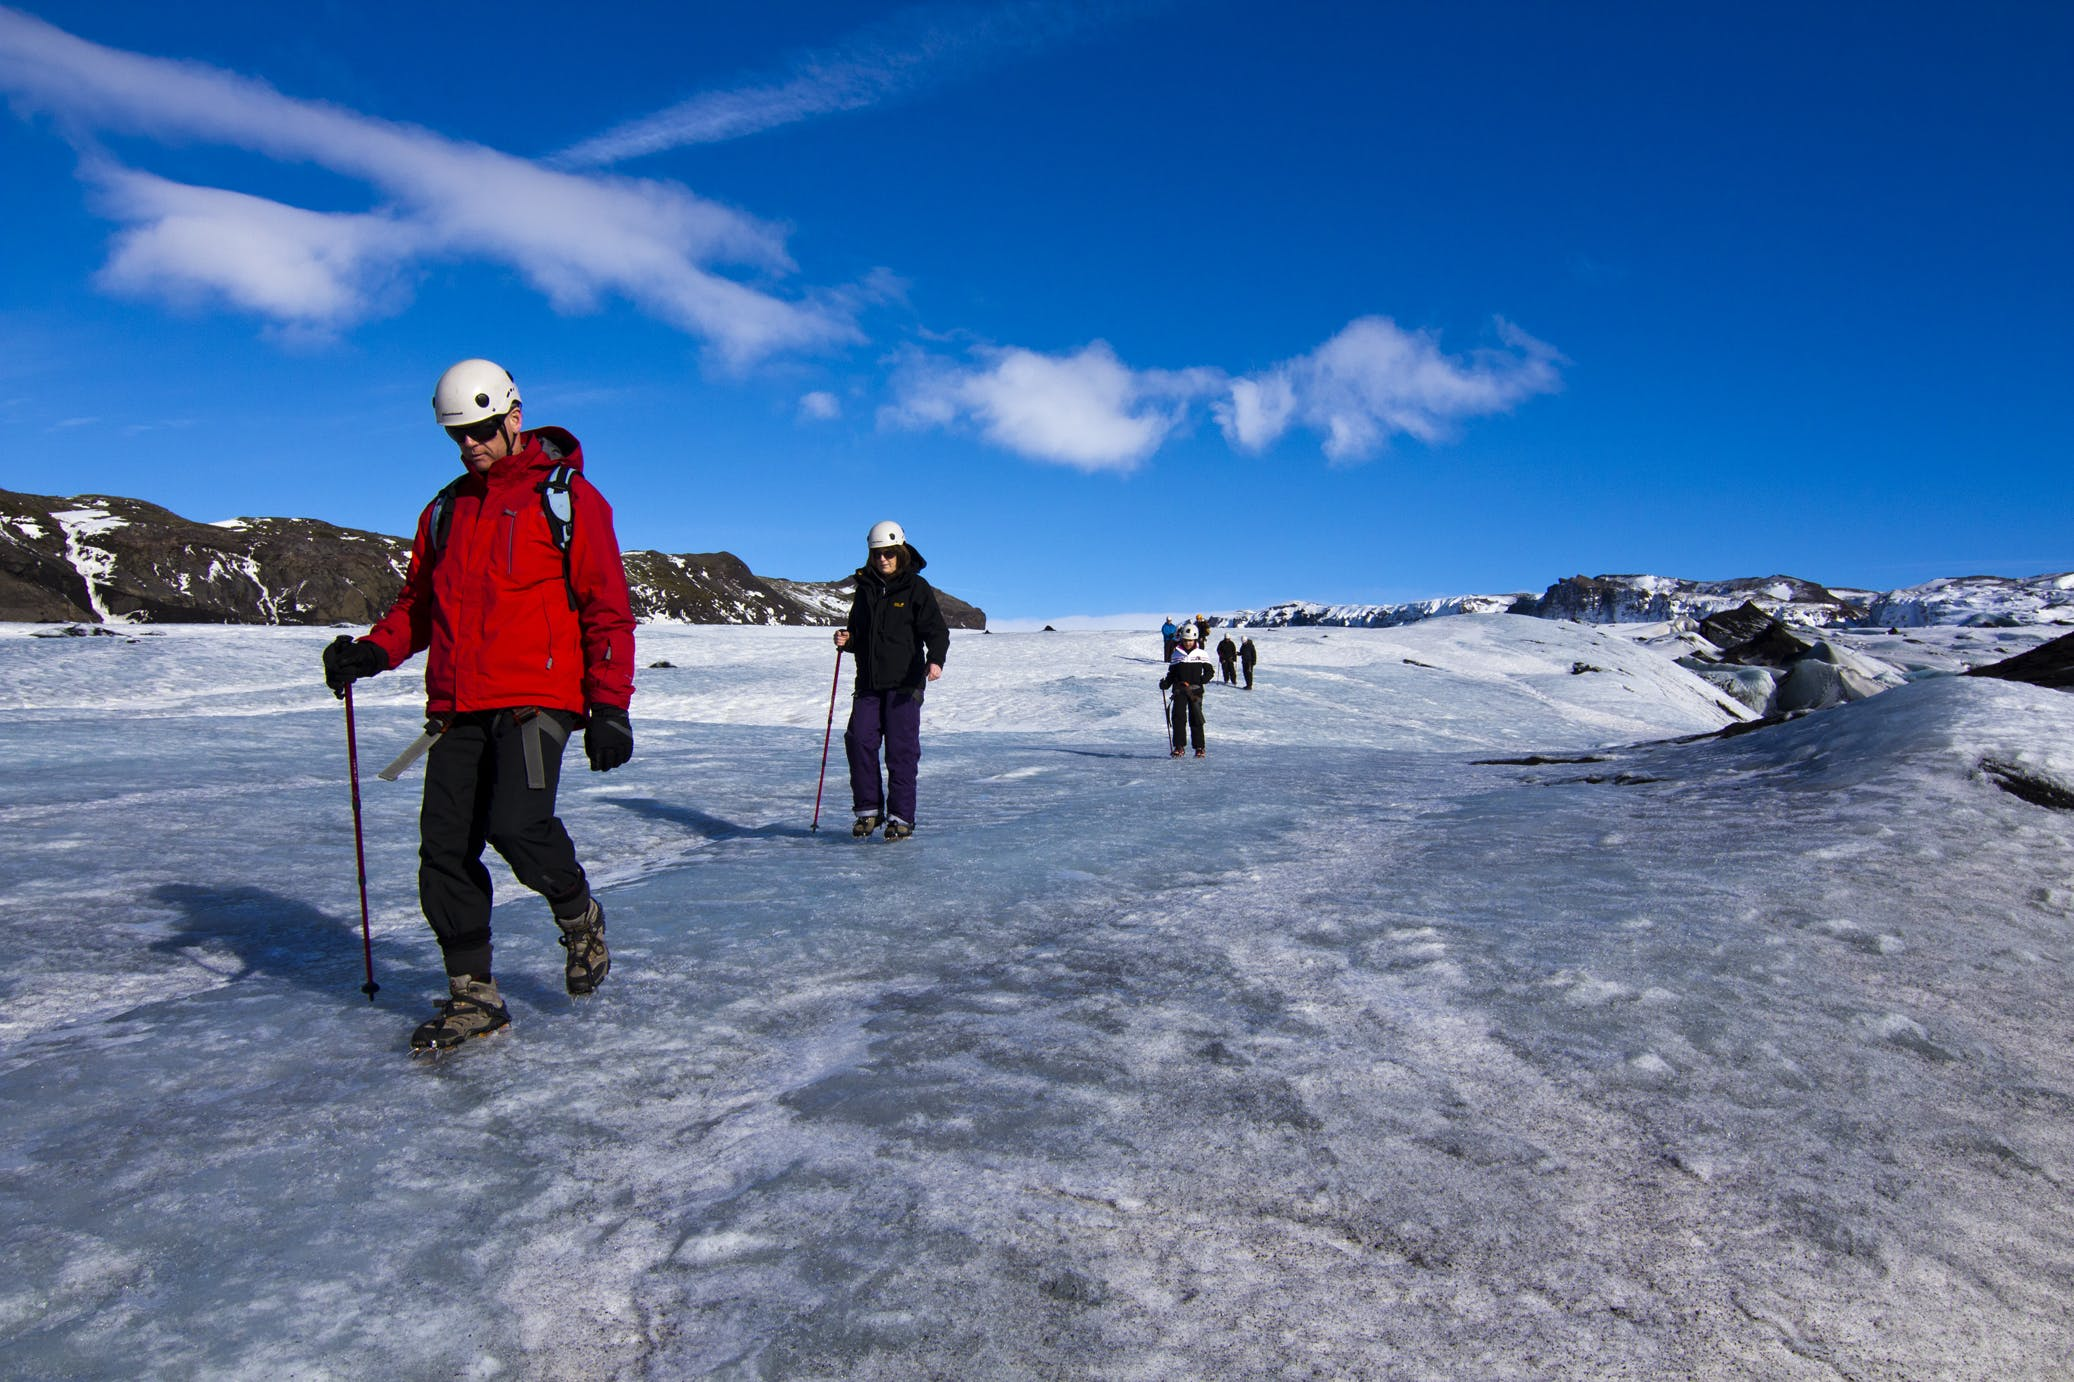 Glacier Hiking Tour up Solheimajokull Glacier | Easy Difficulty